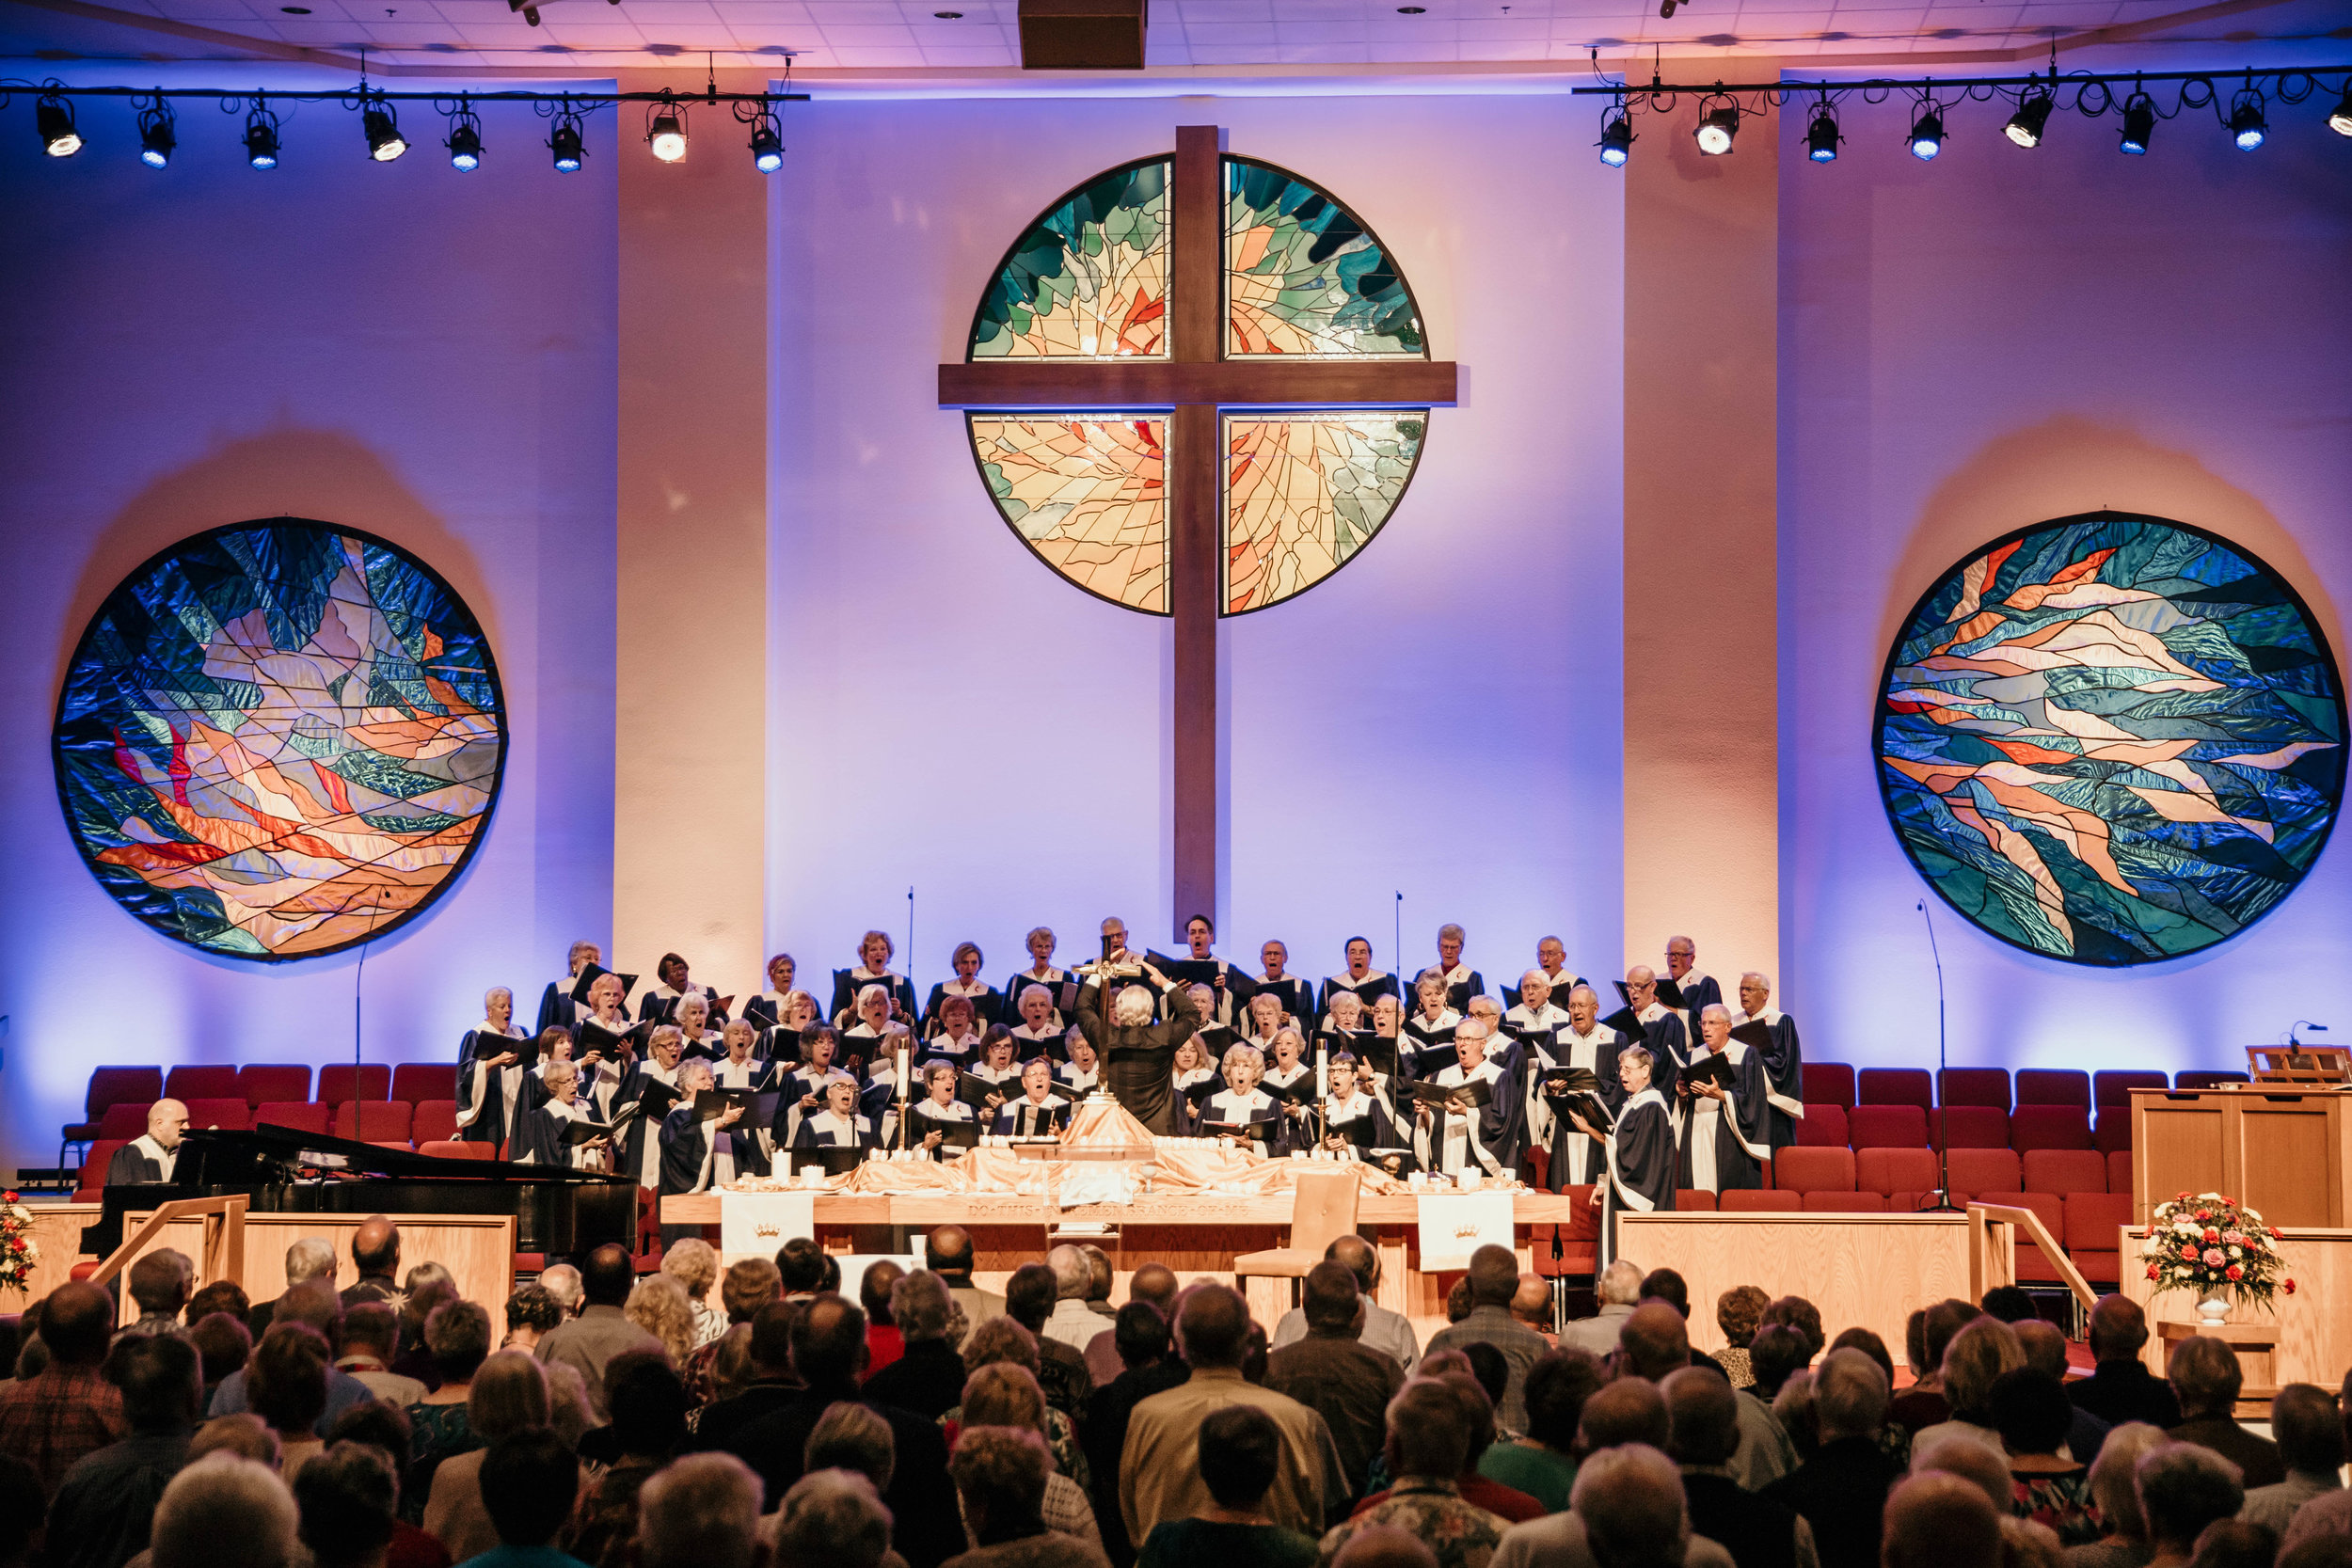 Summerhill - Worship, Music, & The Arts